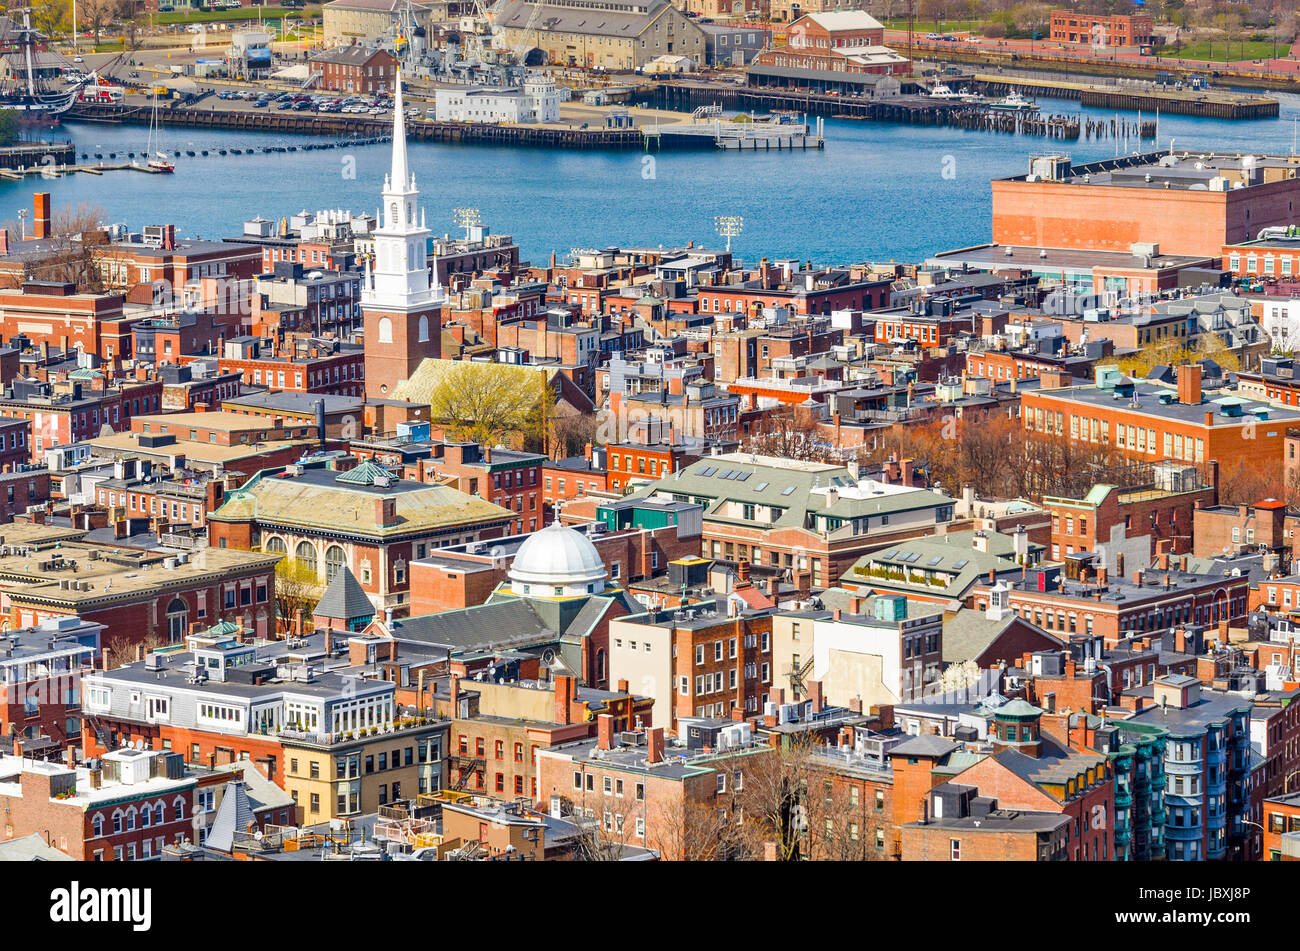 Boston, Massachusetts, USA at North End. - Stock Image